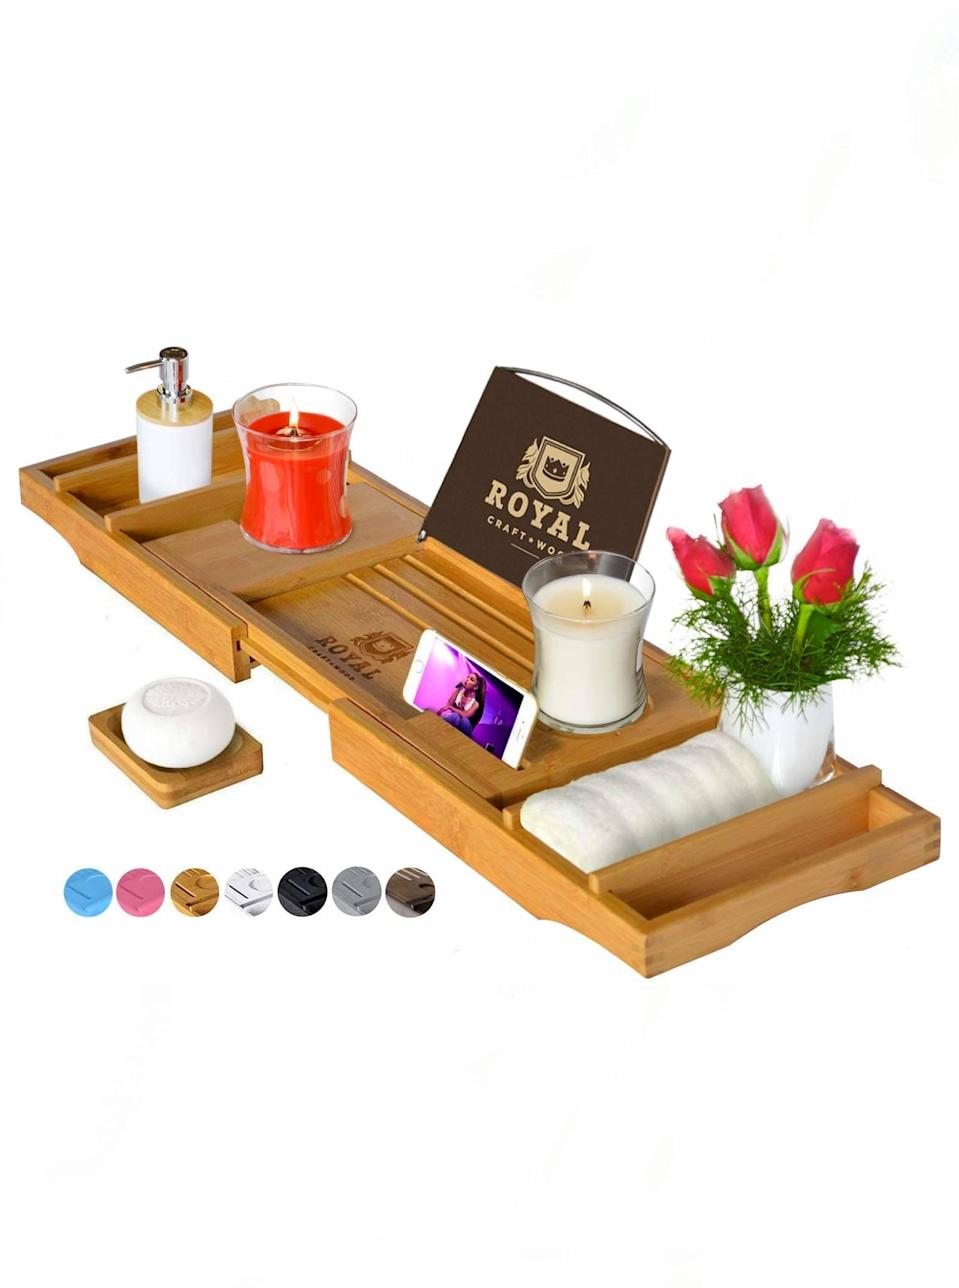 "Let's face it: Moms deserve all of the decadent bubble baths their hearts desire, and this tray will make the experience even more seamless. Throw in some of our favorite <a href=""https://www.glamour.com/gallery/best-bath-essentials?mbid=synd_yahoo_rss"" rel=""nofollow noopener"" target=""_blank"" data-ylk=""slk:bath essentials"" class=""link rapid-noclick-resp"">bath essentials</a> and watch her stress levels plummet. $42, Amazon. <a href=""https://www.amazon.com/dp/B01C4IS4Q2/"" rel=""nofollow noopener"" target=""_blank"" data-ylk=""slk:Get it now!"" class=""link rapid-noclick-resp"">Get it now!</a>"